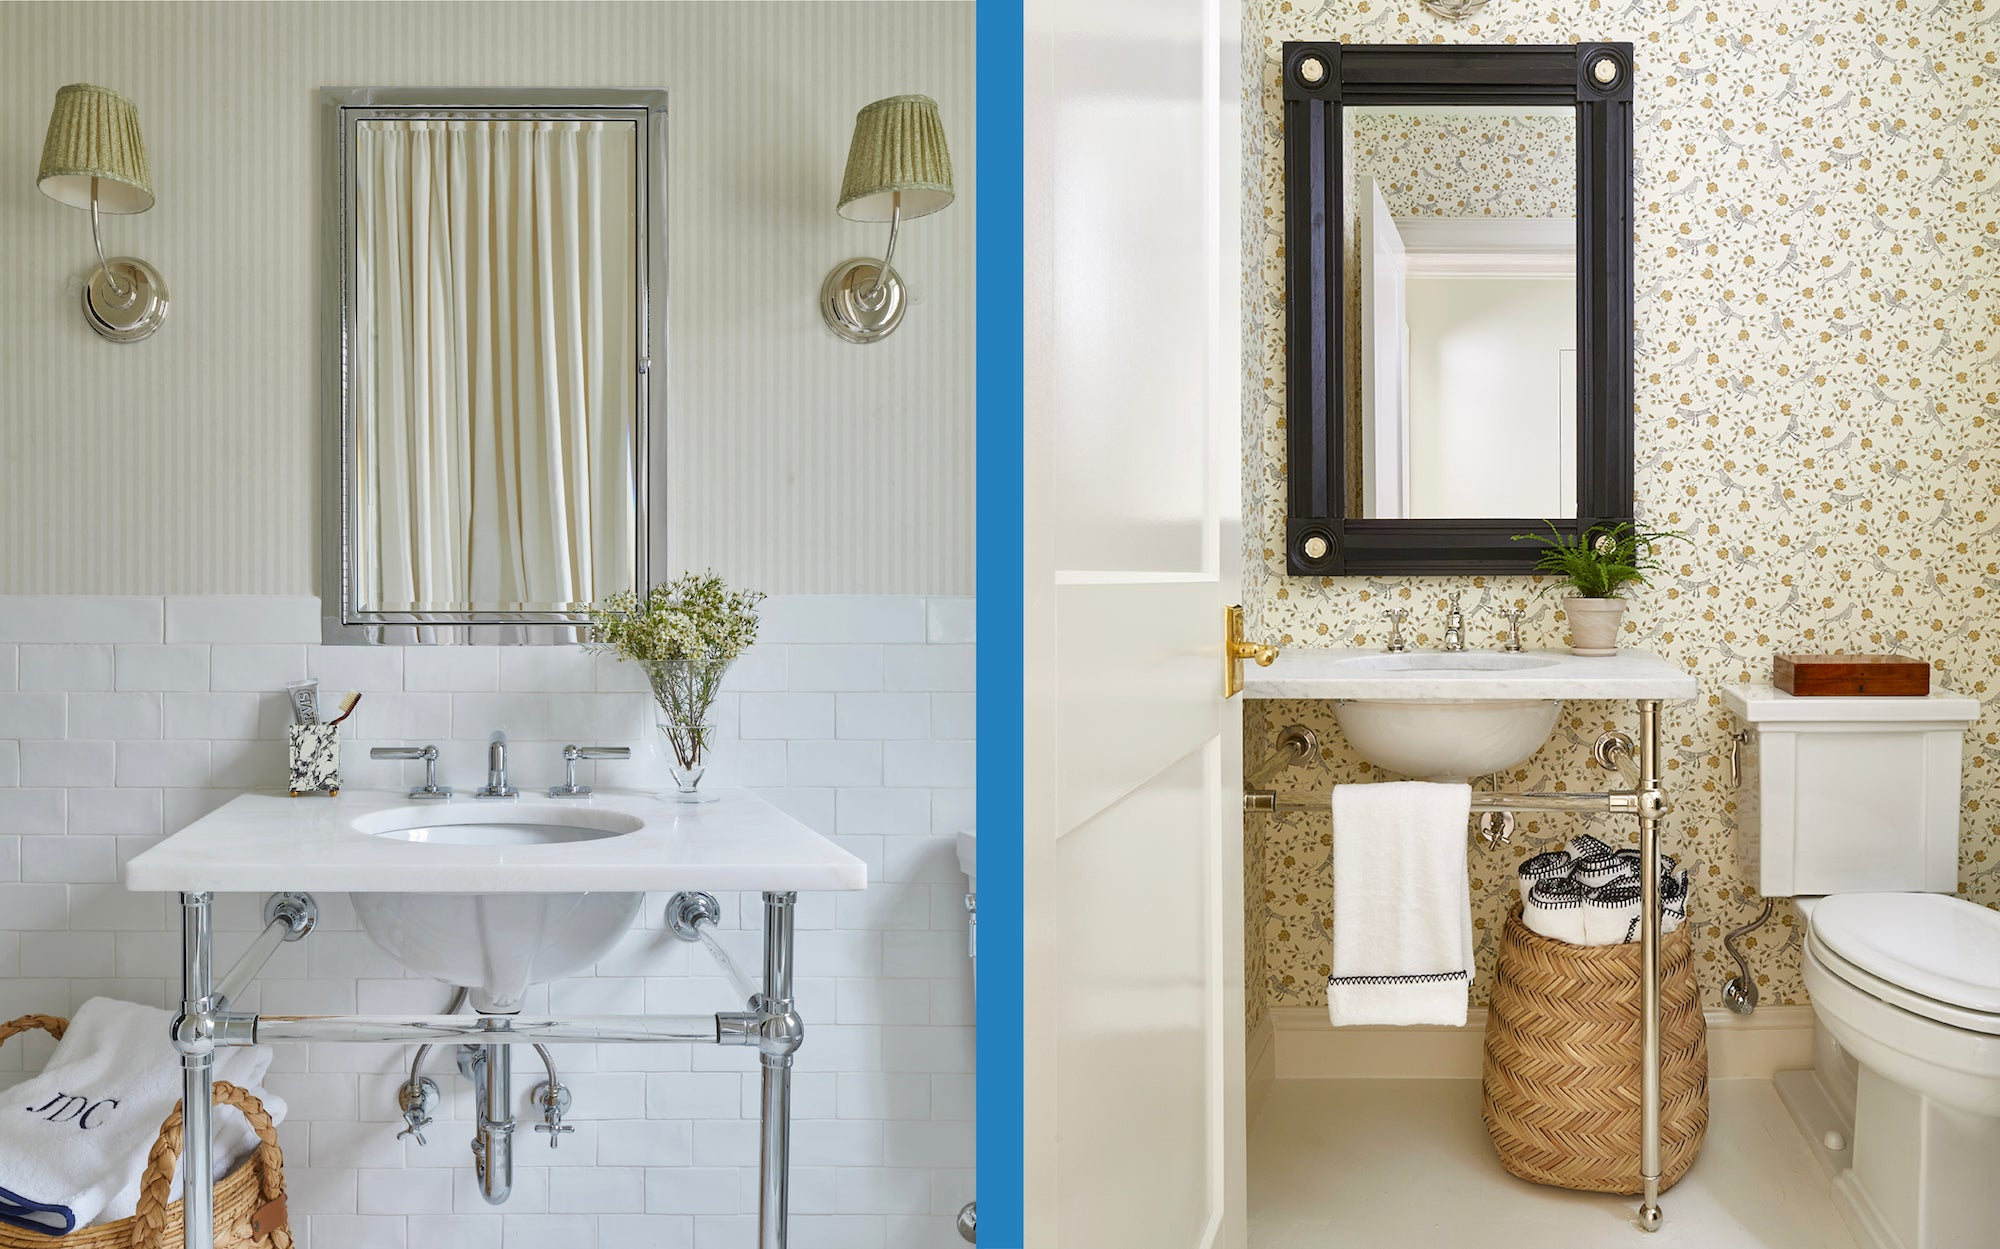 Two sophisticated bathrooms featuring Weezie Towels